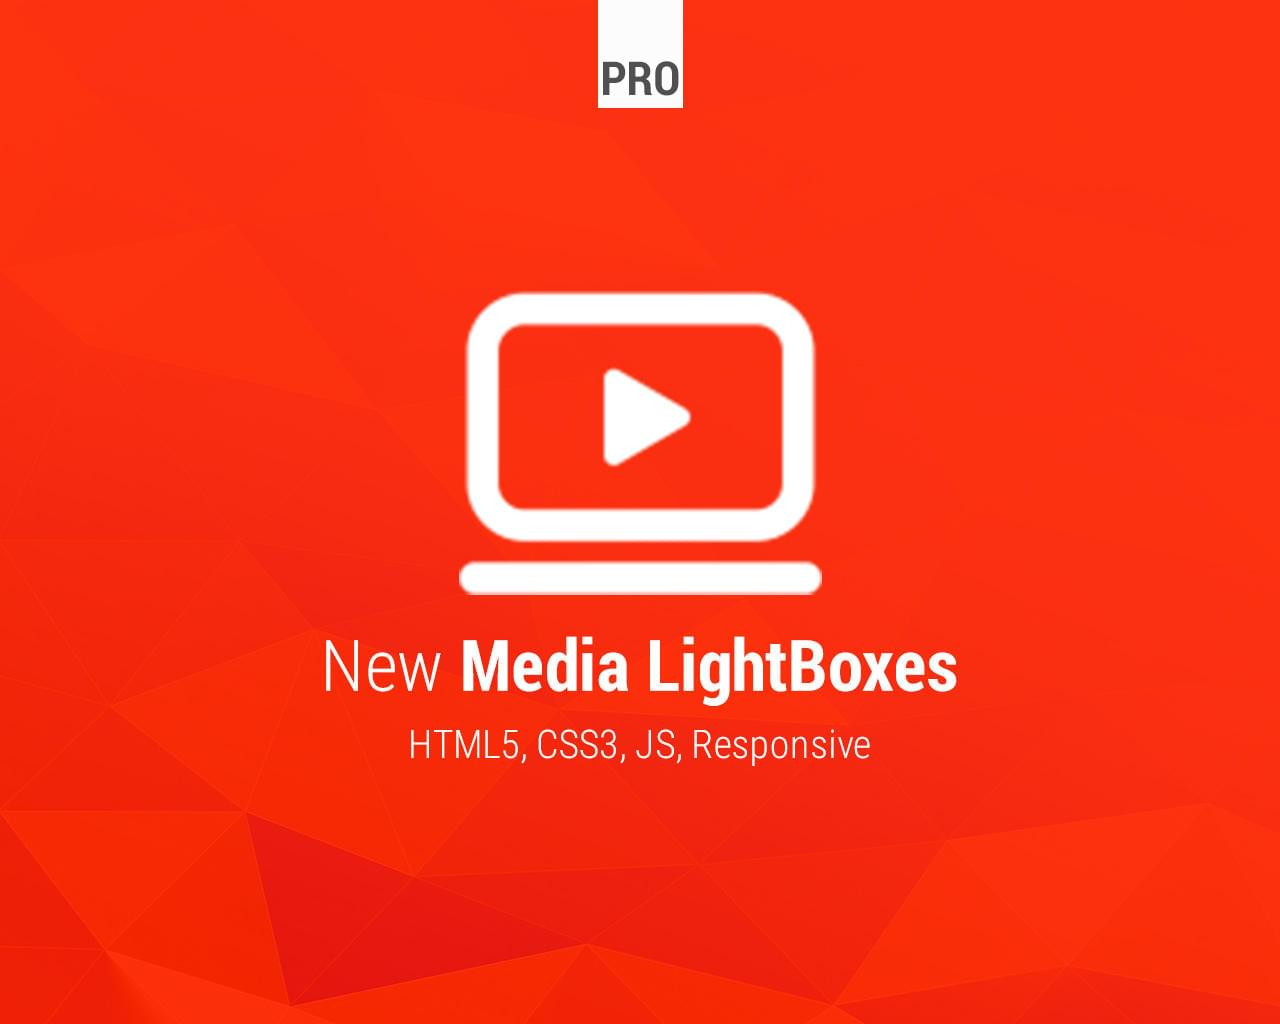 New Media Lightboxes - Modal & Fully Responsive by Lukasz_Czerwinski - 113564